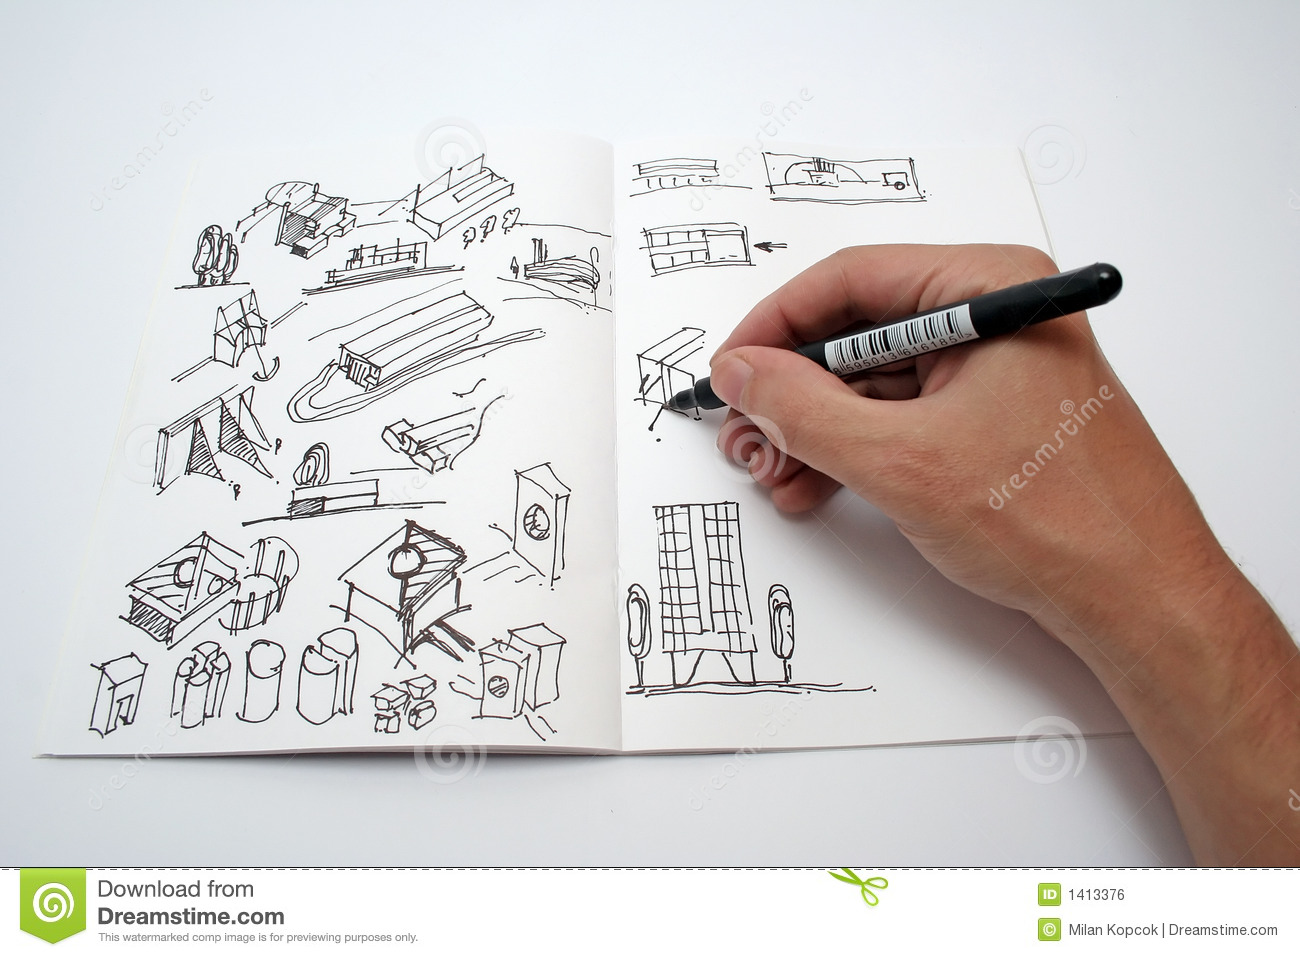 http://thumbs.dreamstime.com/z/drawing-book-1413376.jpg